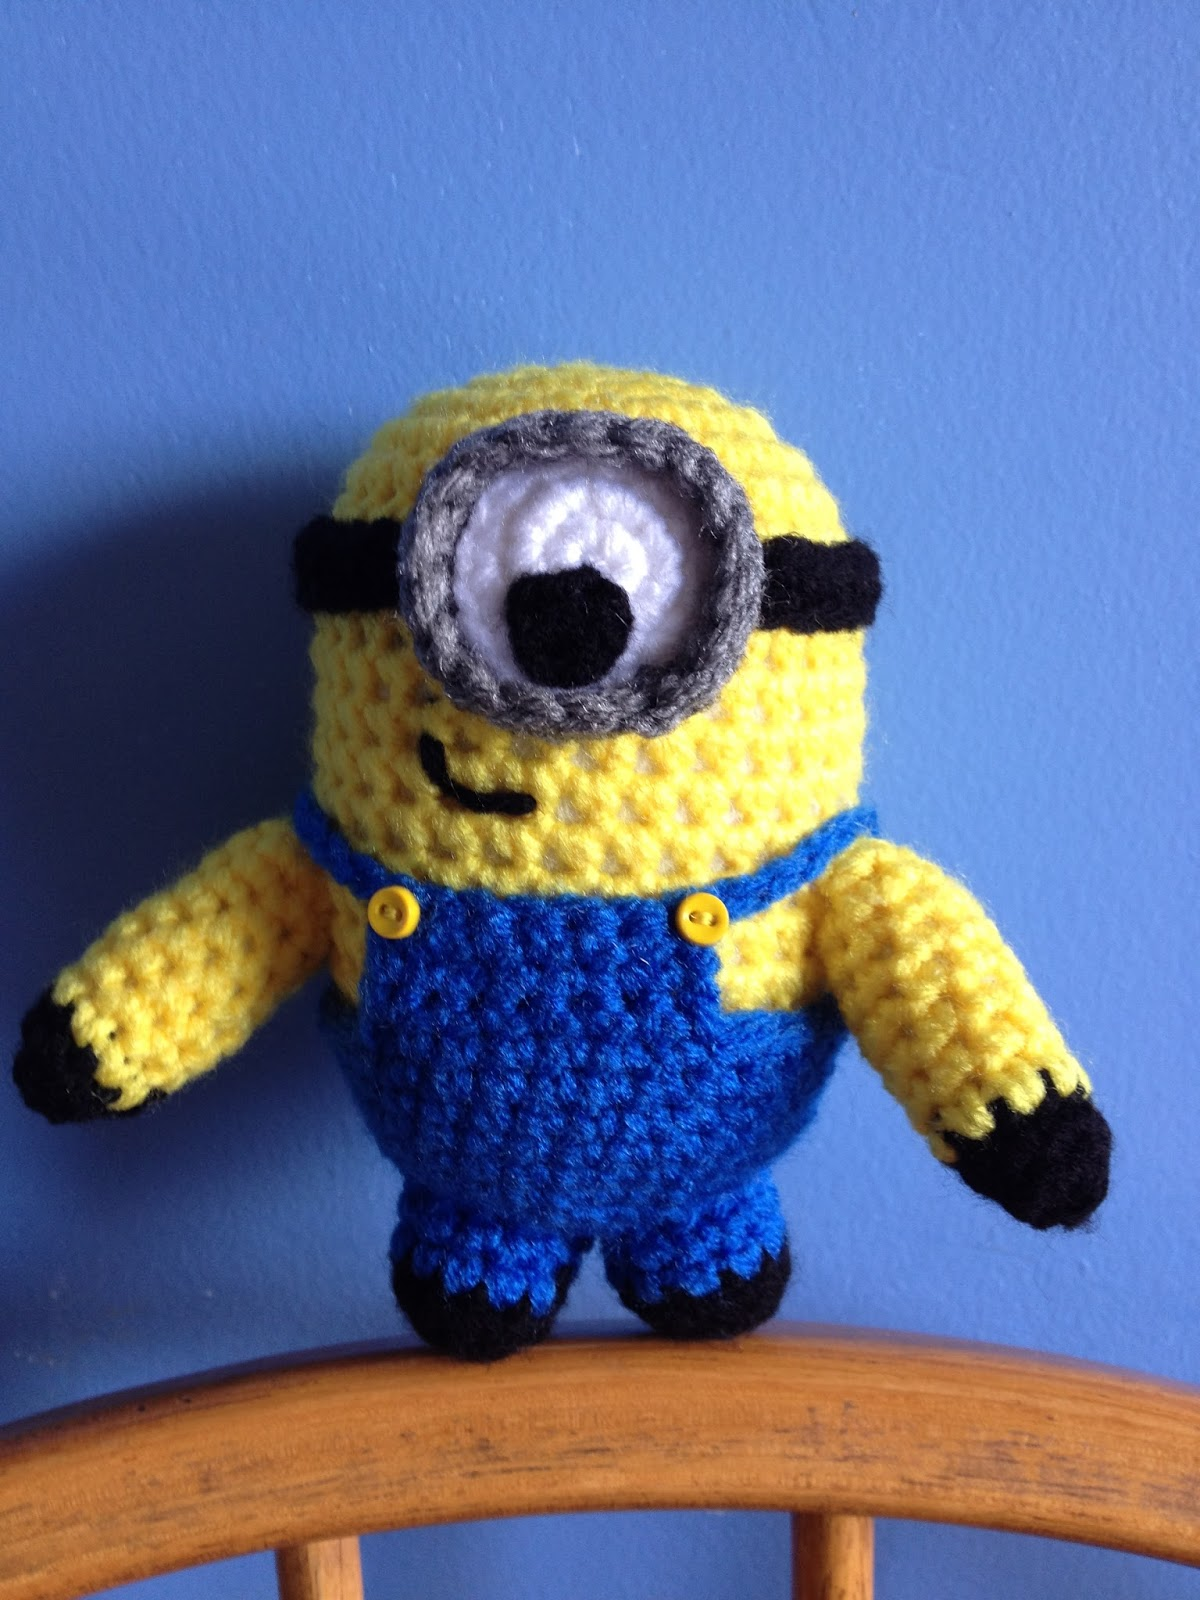 Crochet Me : My Crocheted World: Despicable Me Minion Crochet Doll